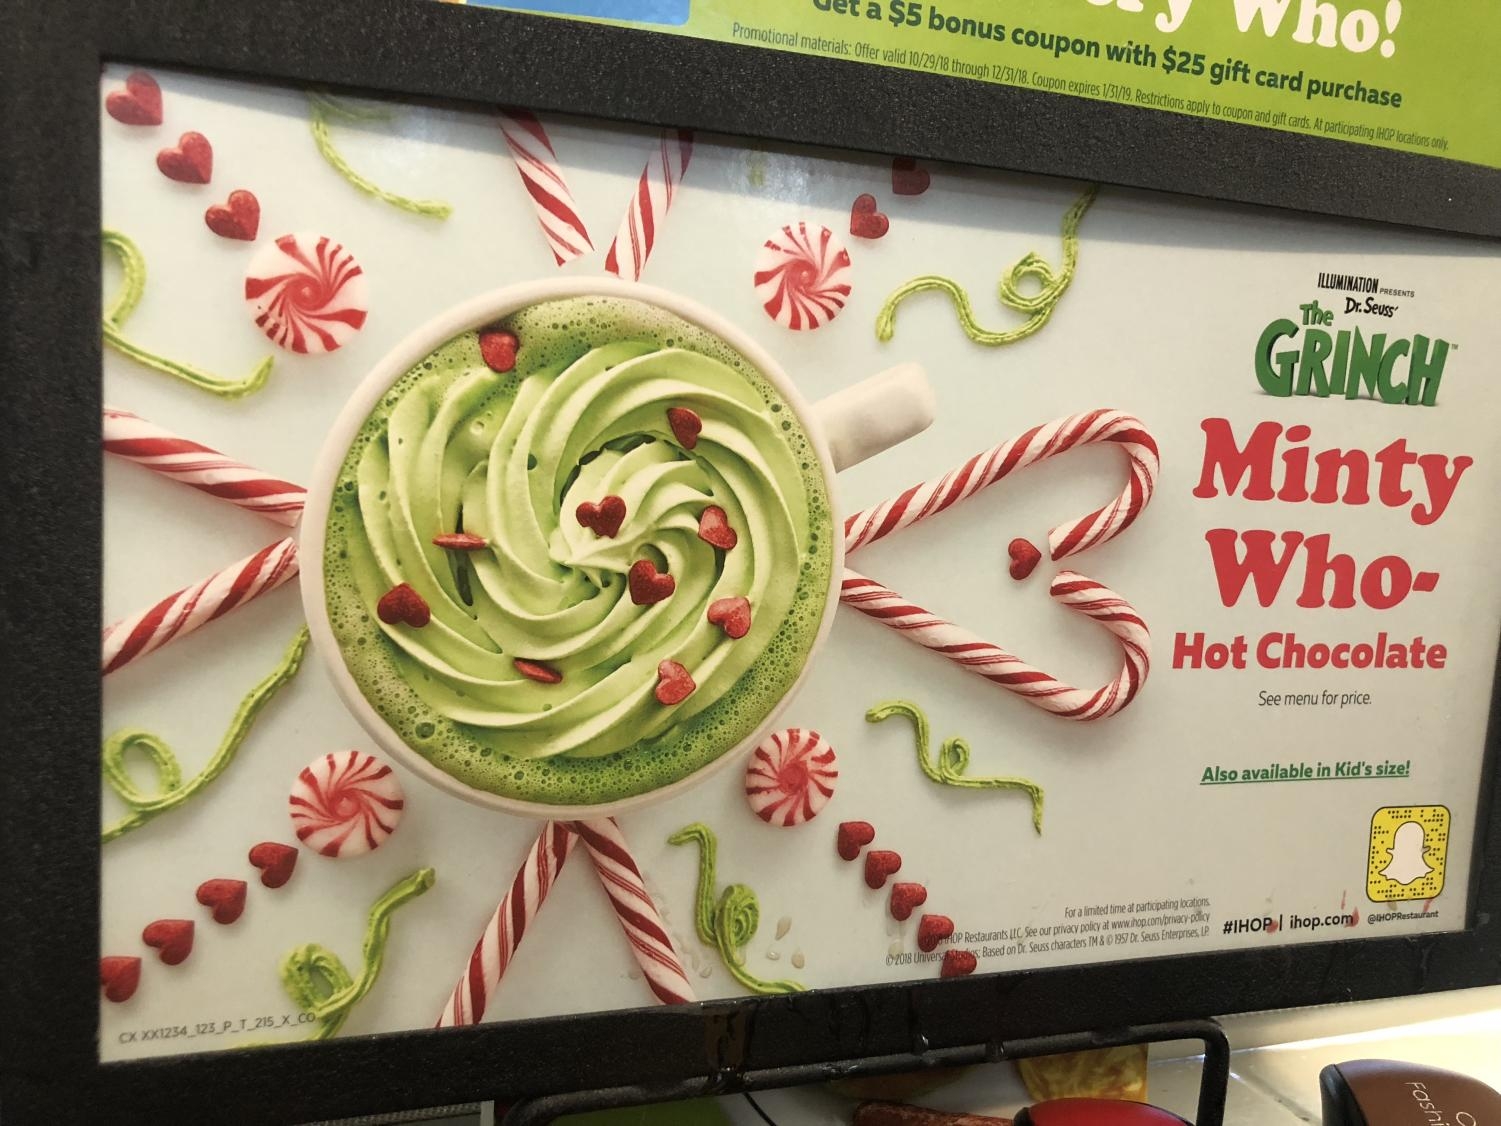 Ihop's minty hot chocolate ad